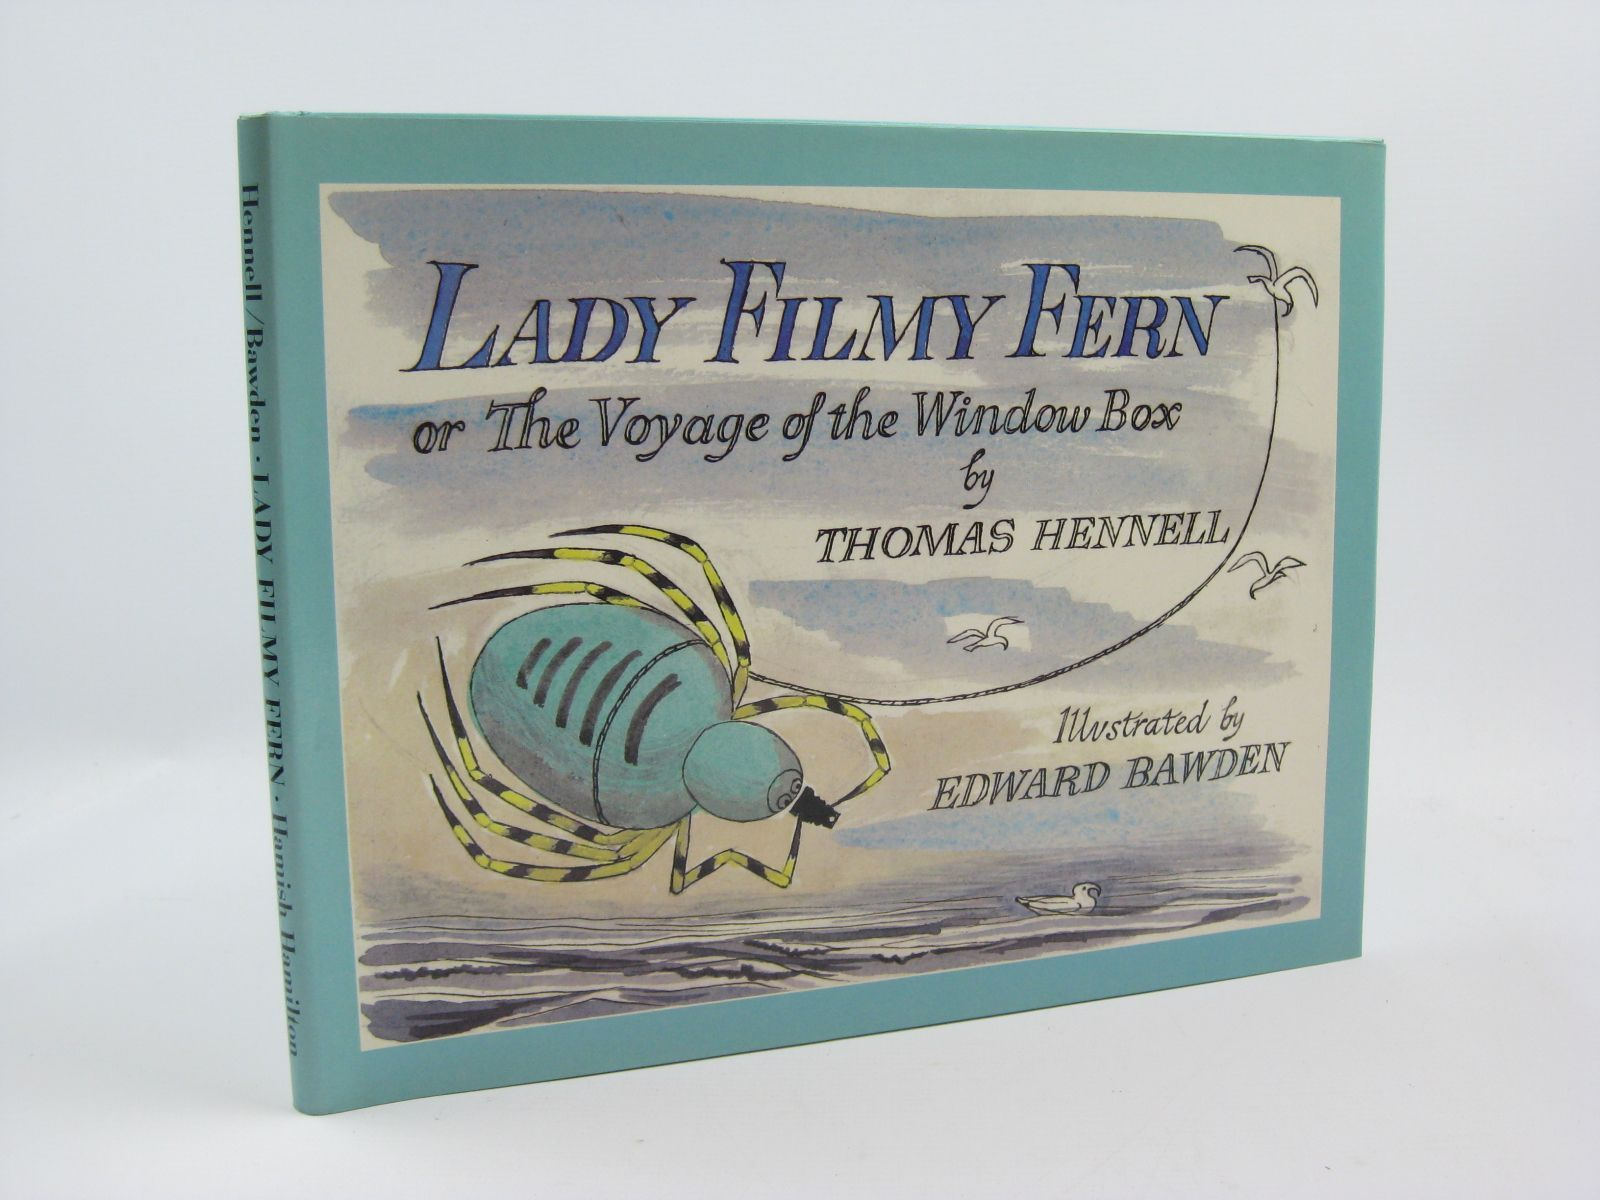 Photo of LADY FILMY FERN written by Hennell, Thomas illustrated by Bawden, Edward published by Hamish Hamilton (STOCK CODE: 1406591)  for sale by Stella & Rose's Books